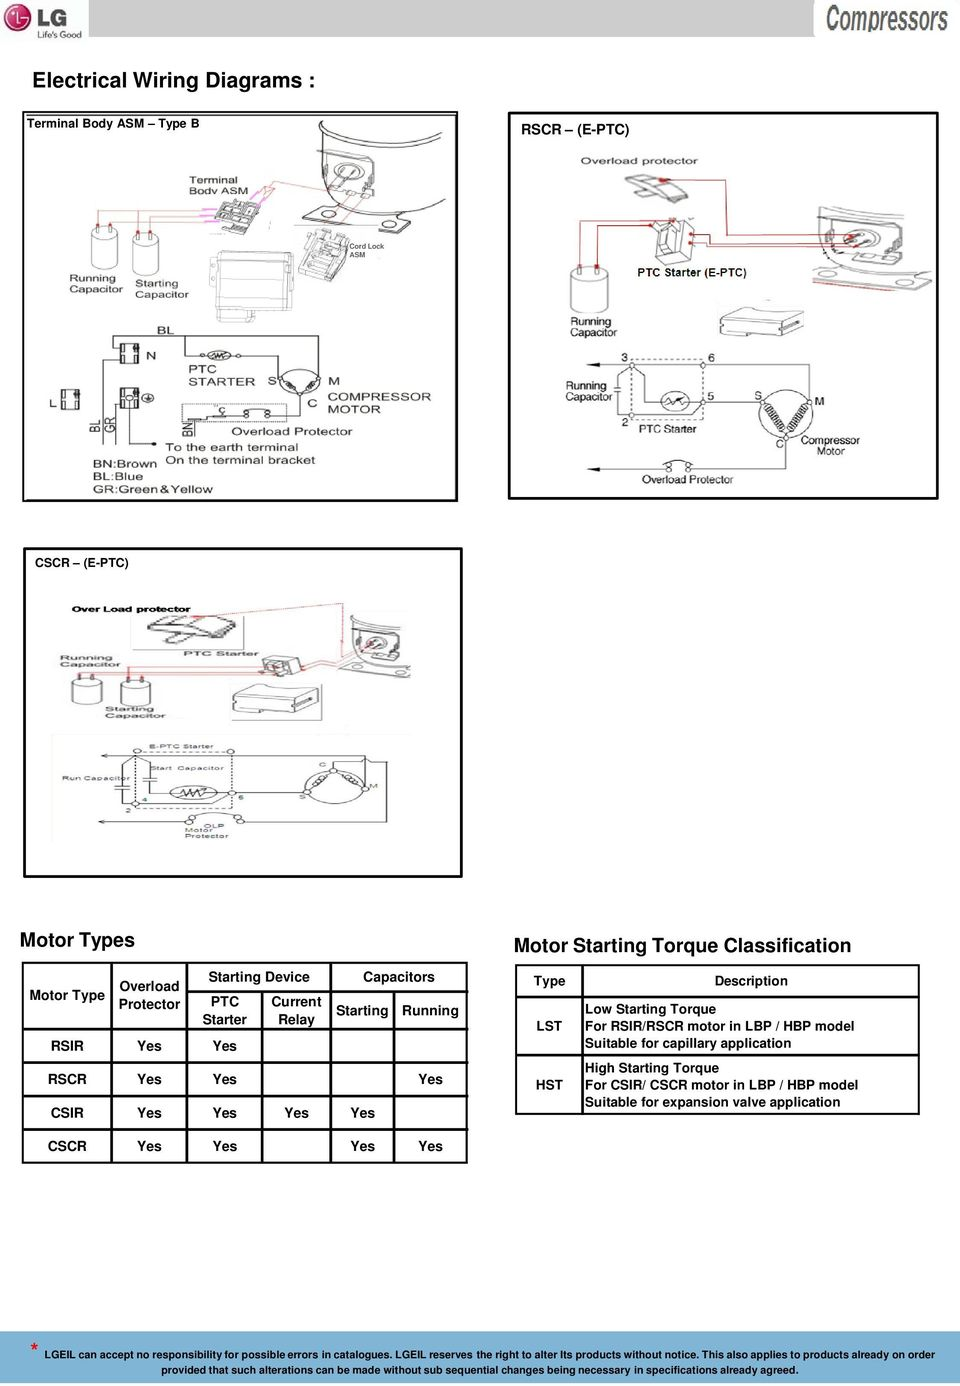 medium resolution of cscr wiring diagram wiring librarystarting running rscr yes yes yes csir yes yes yes yes cscr